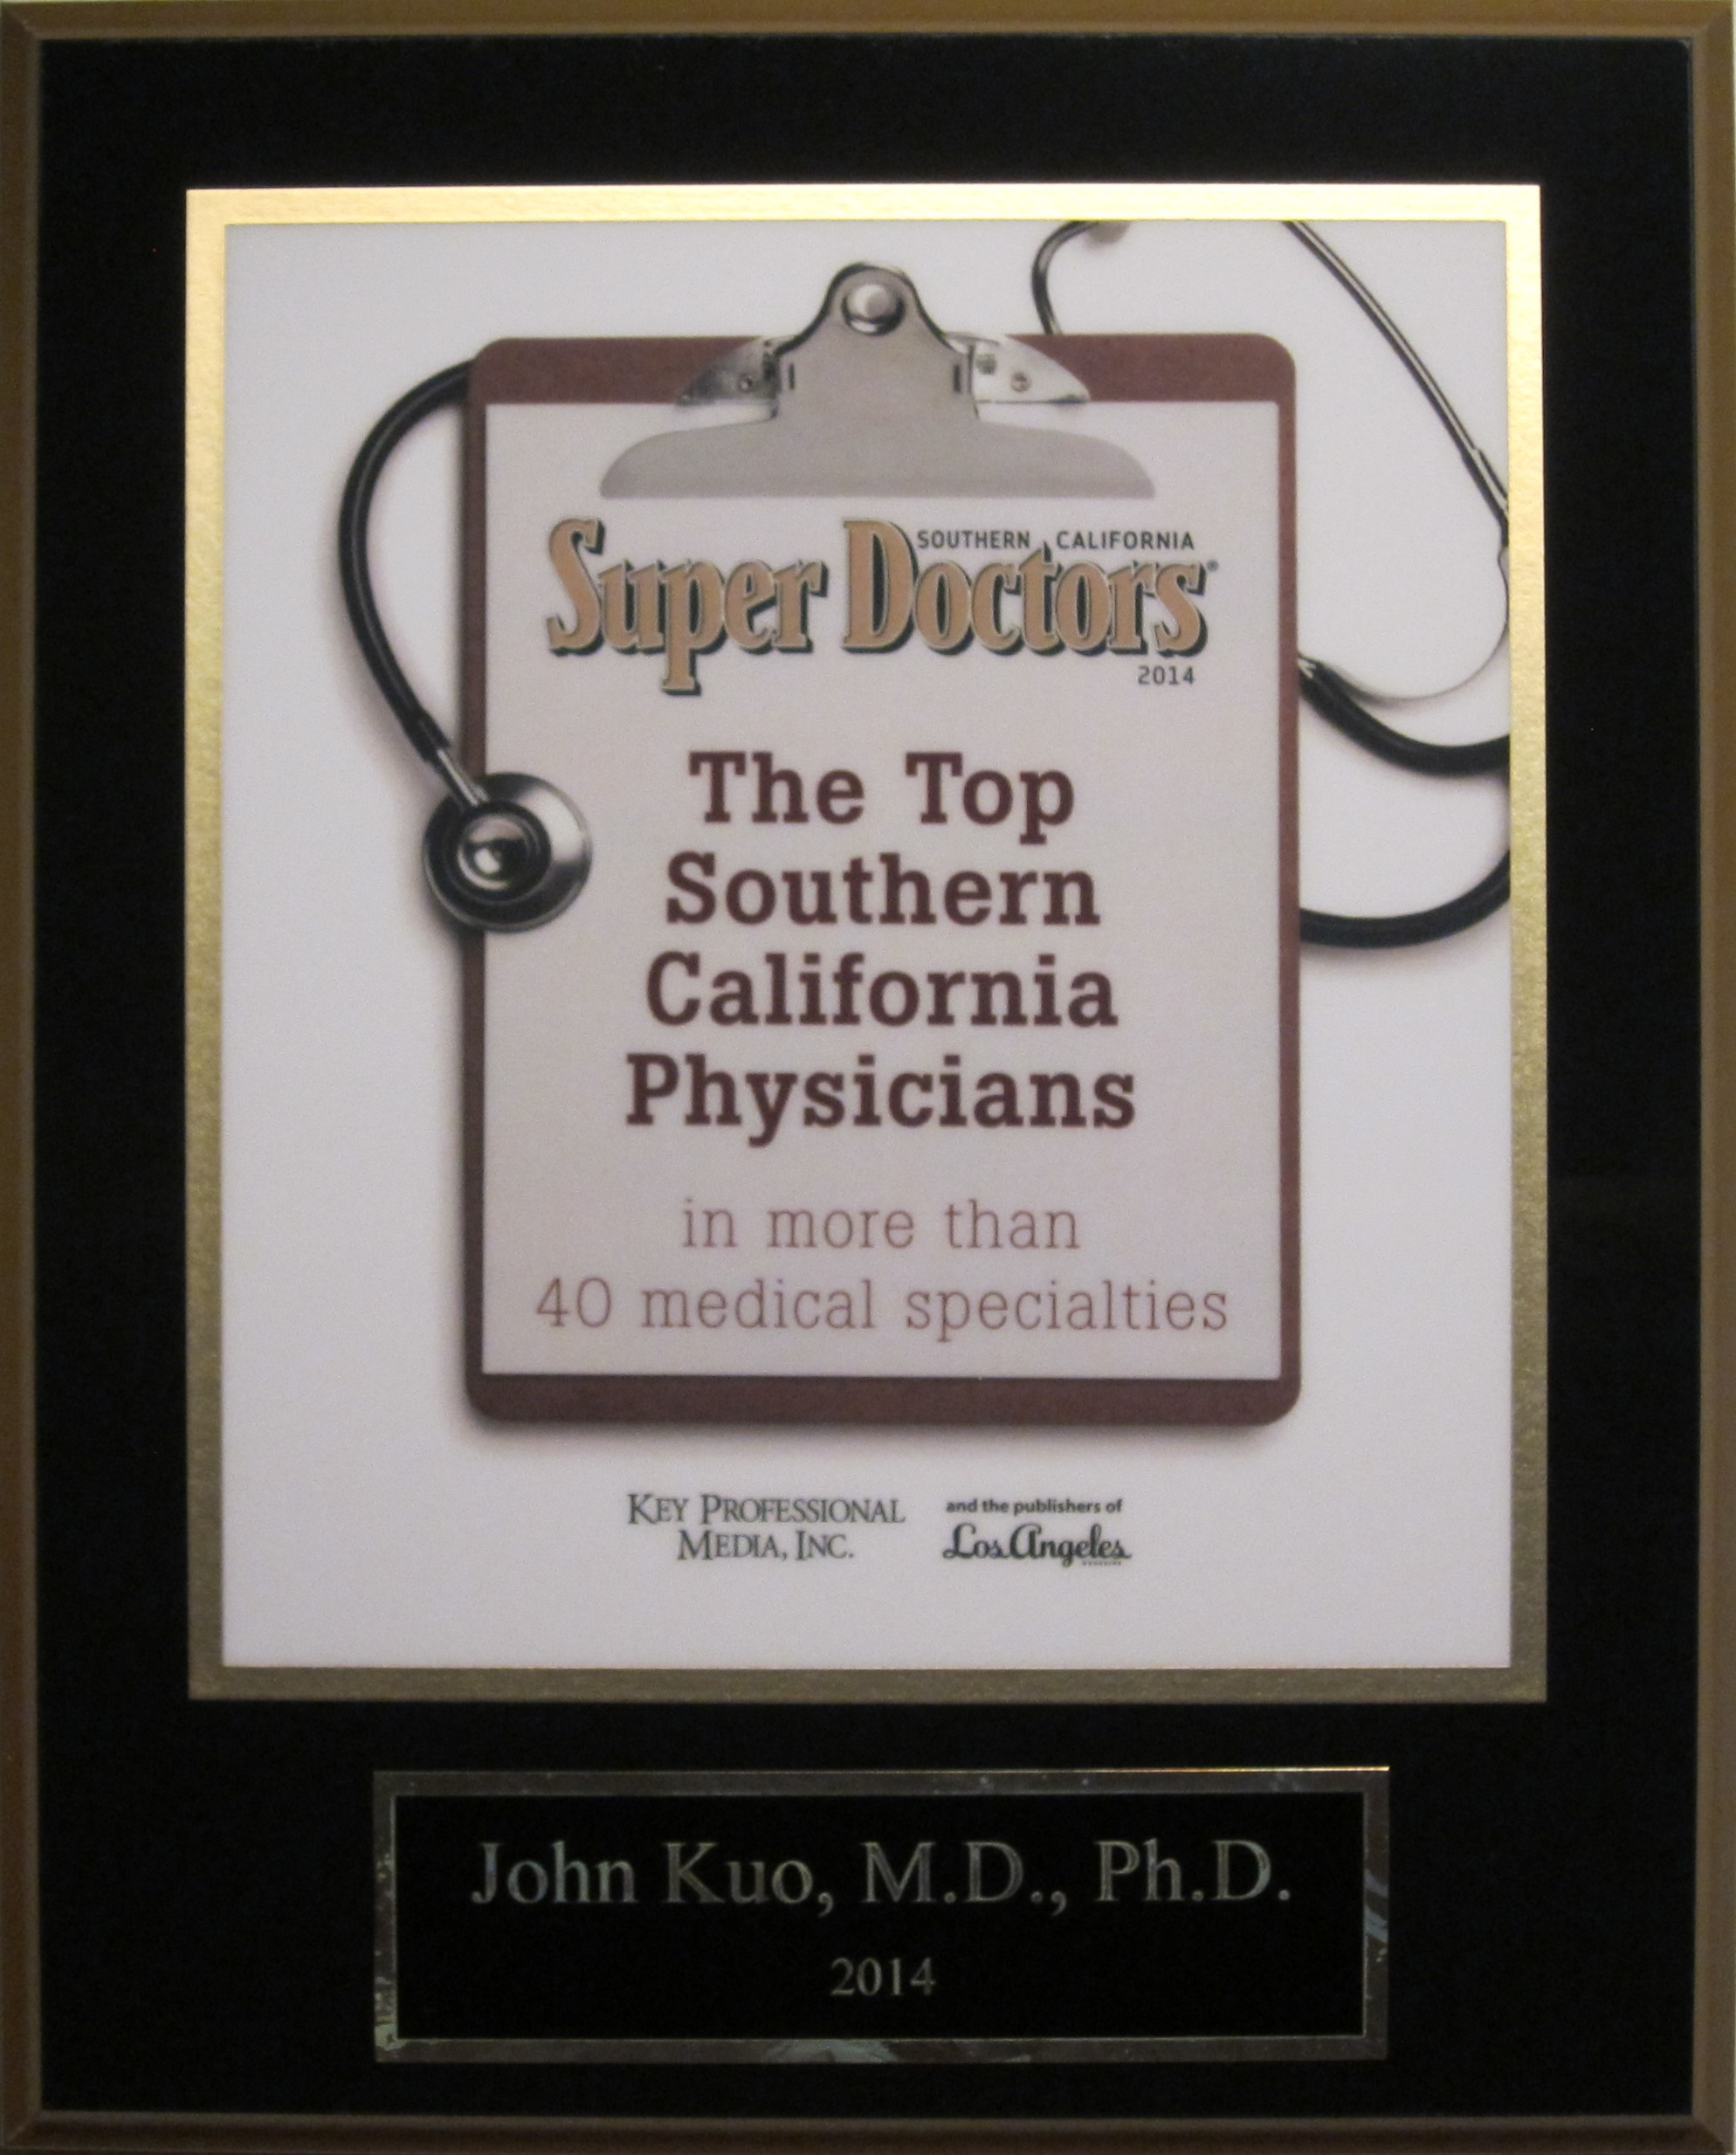 Dr. John Kuo IVF Infertility Fertility Reproductive MD Doctor Beverly Hills Los Angeles CA California 郭大庆 不孕症 试管婴儿 双博士 医生 洛杉矶 加州 郭大慶 中国 醫生 試管嬰兒 洛杉磯 Irvine Arcadia Alhambra Pasadena Diamond Bar Rowland Hacienda Heights Cost Treatment Fertilization baby